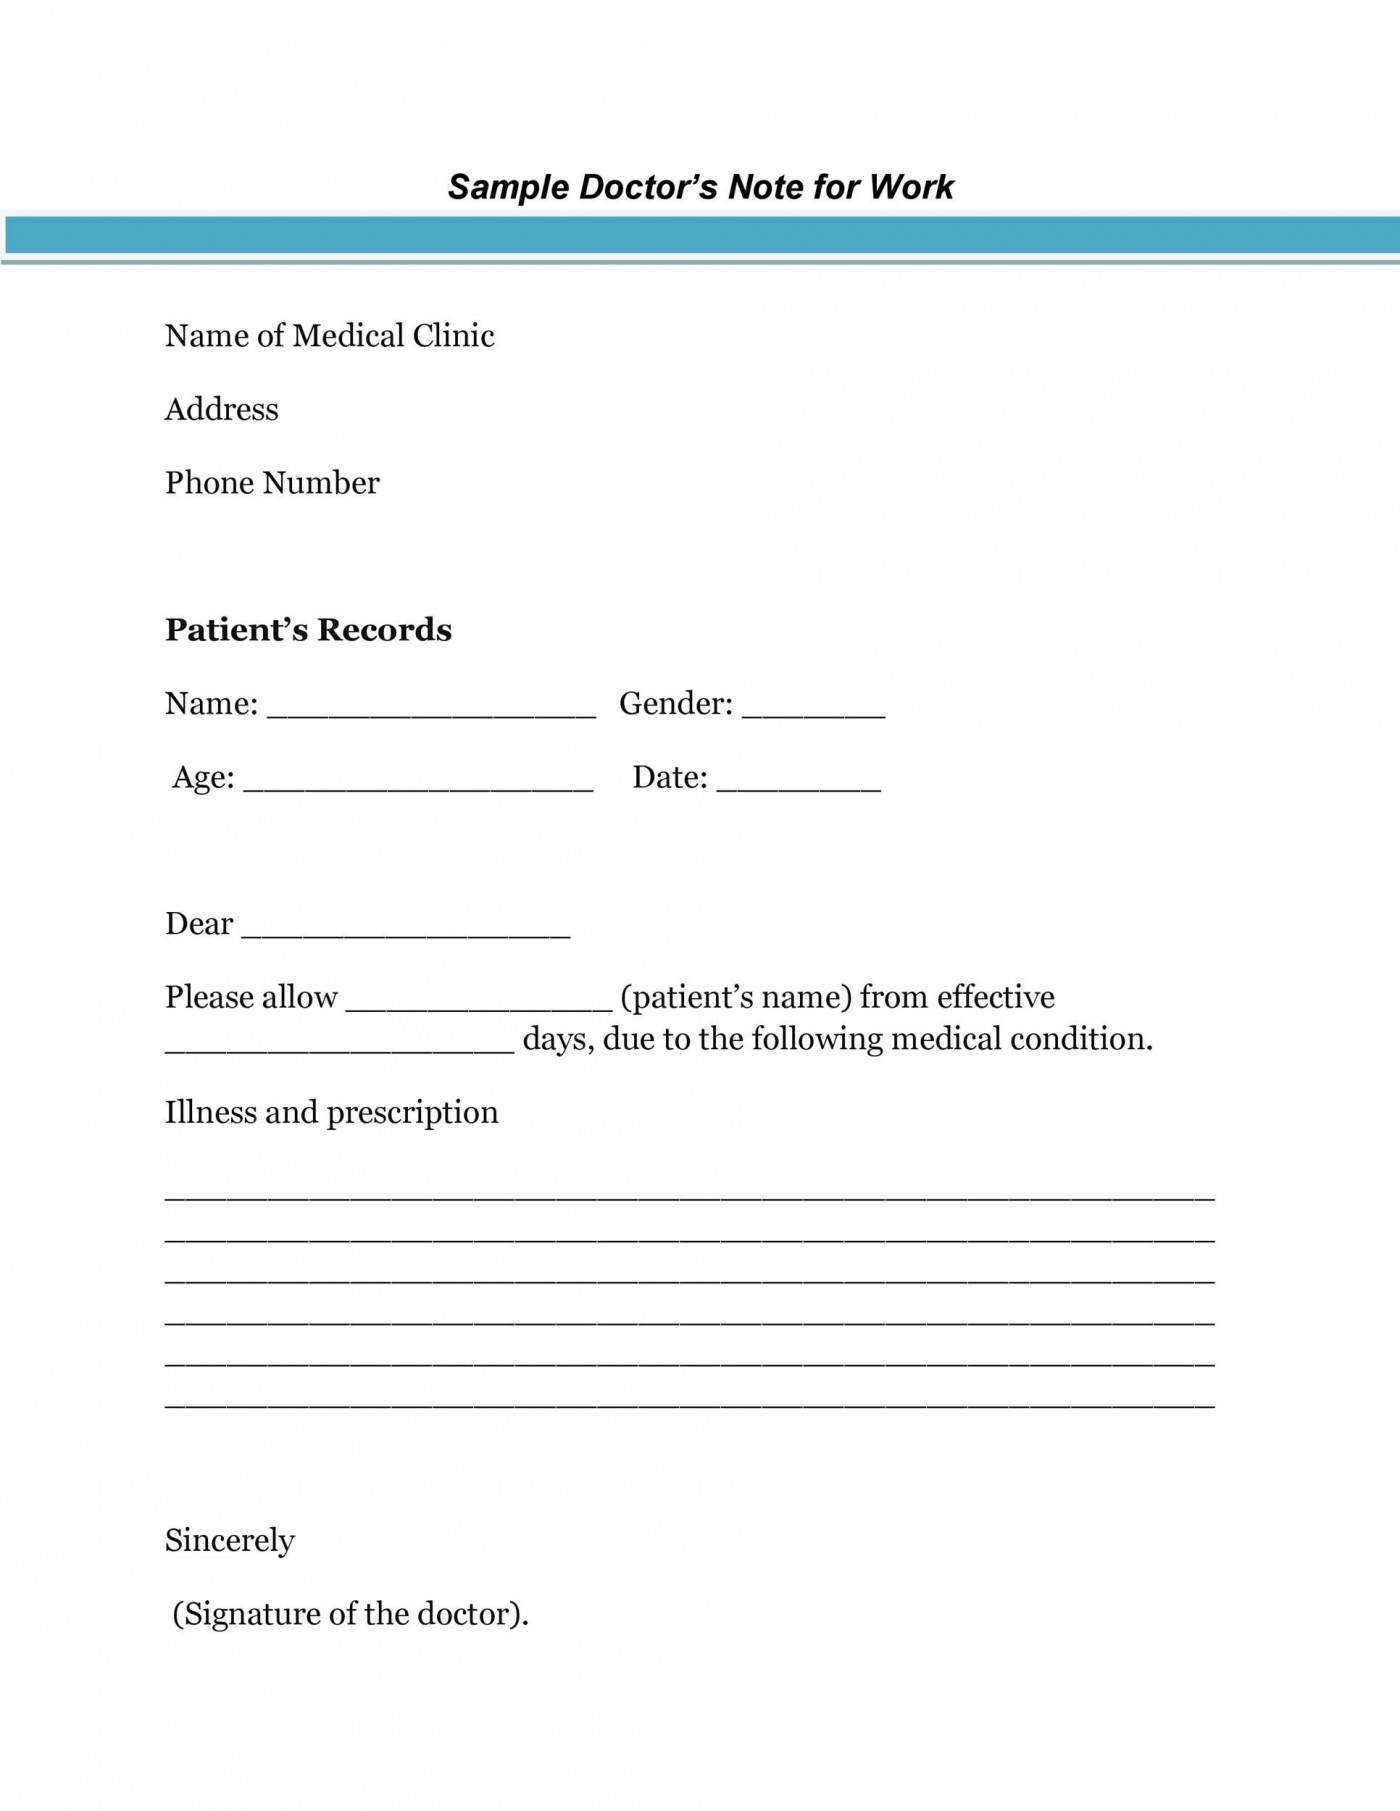 005 Wondrou Doctor Excuse Template For Work Highest Clarity  Missing Note1400